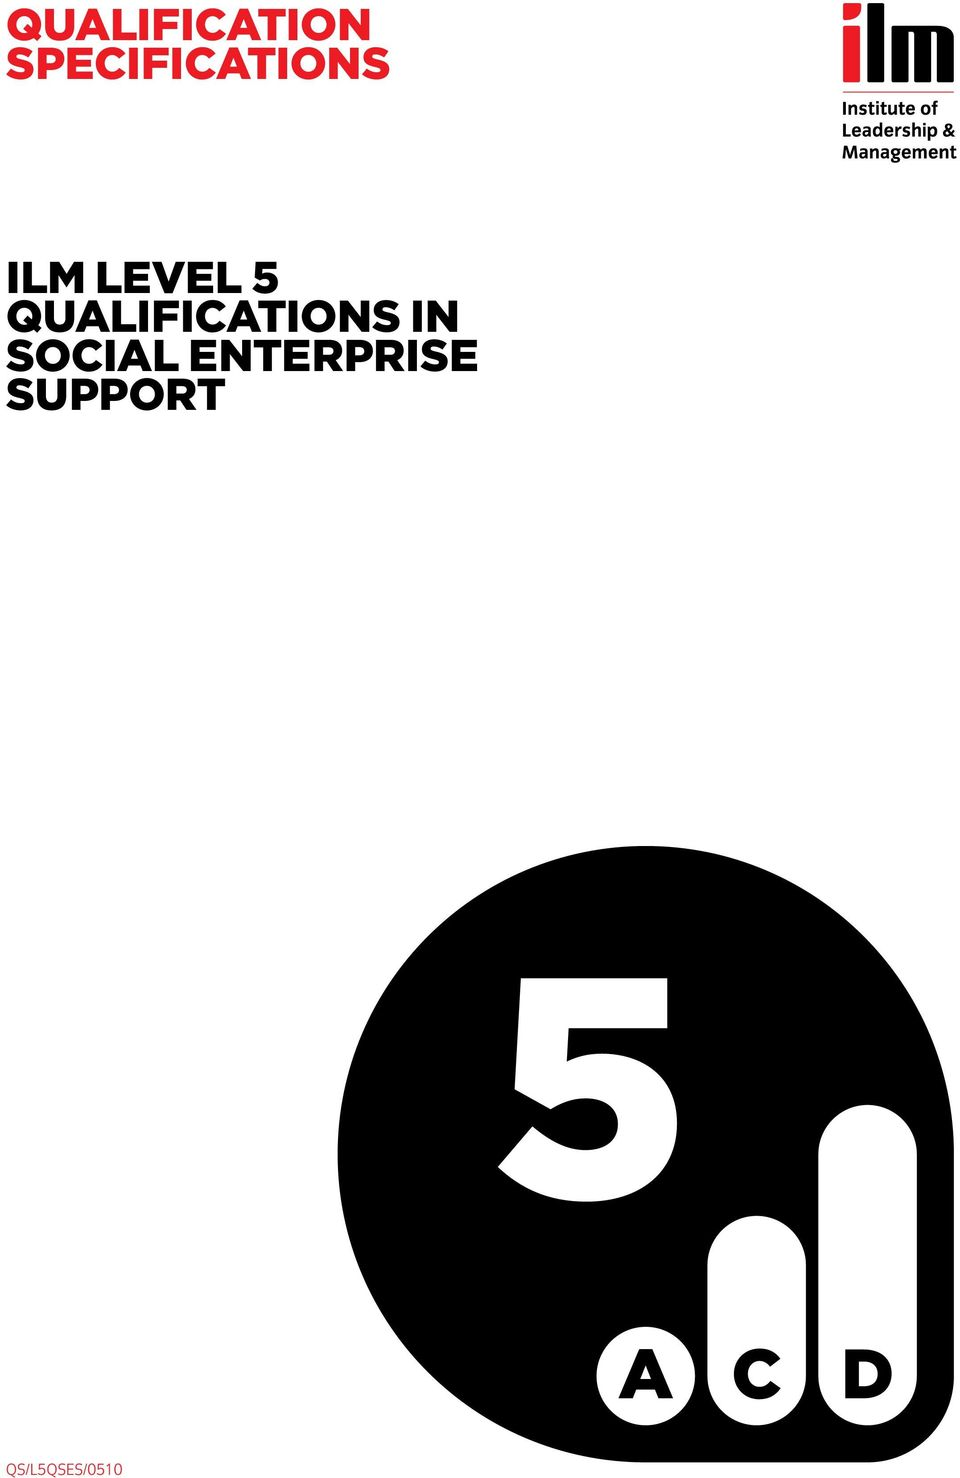 5 Qualifications in